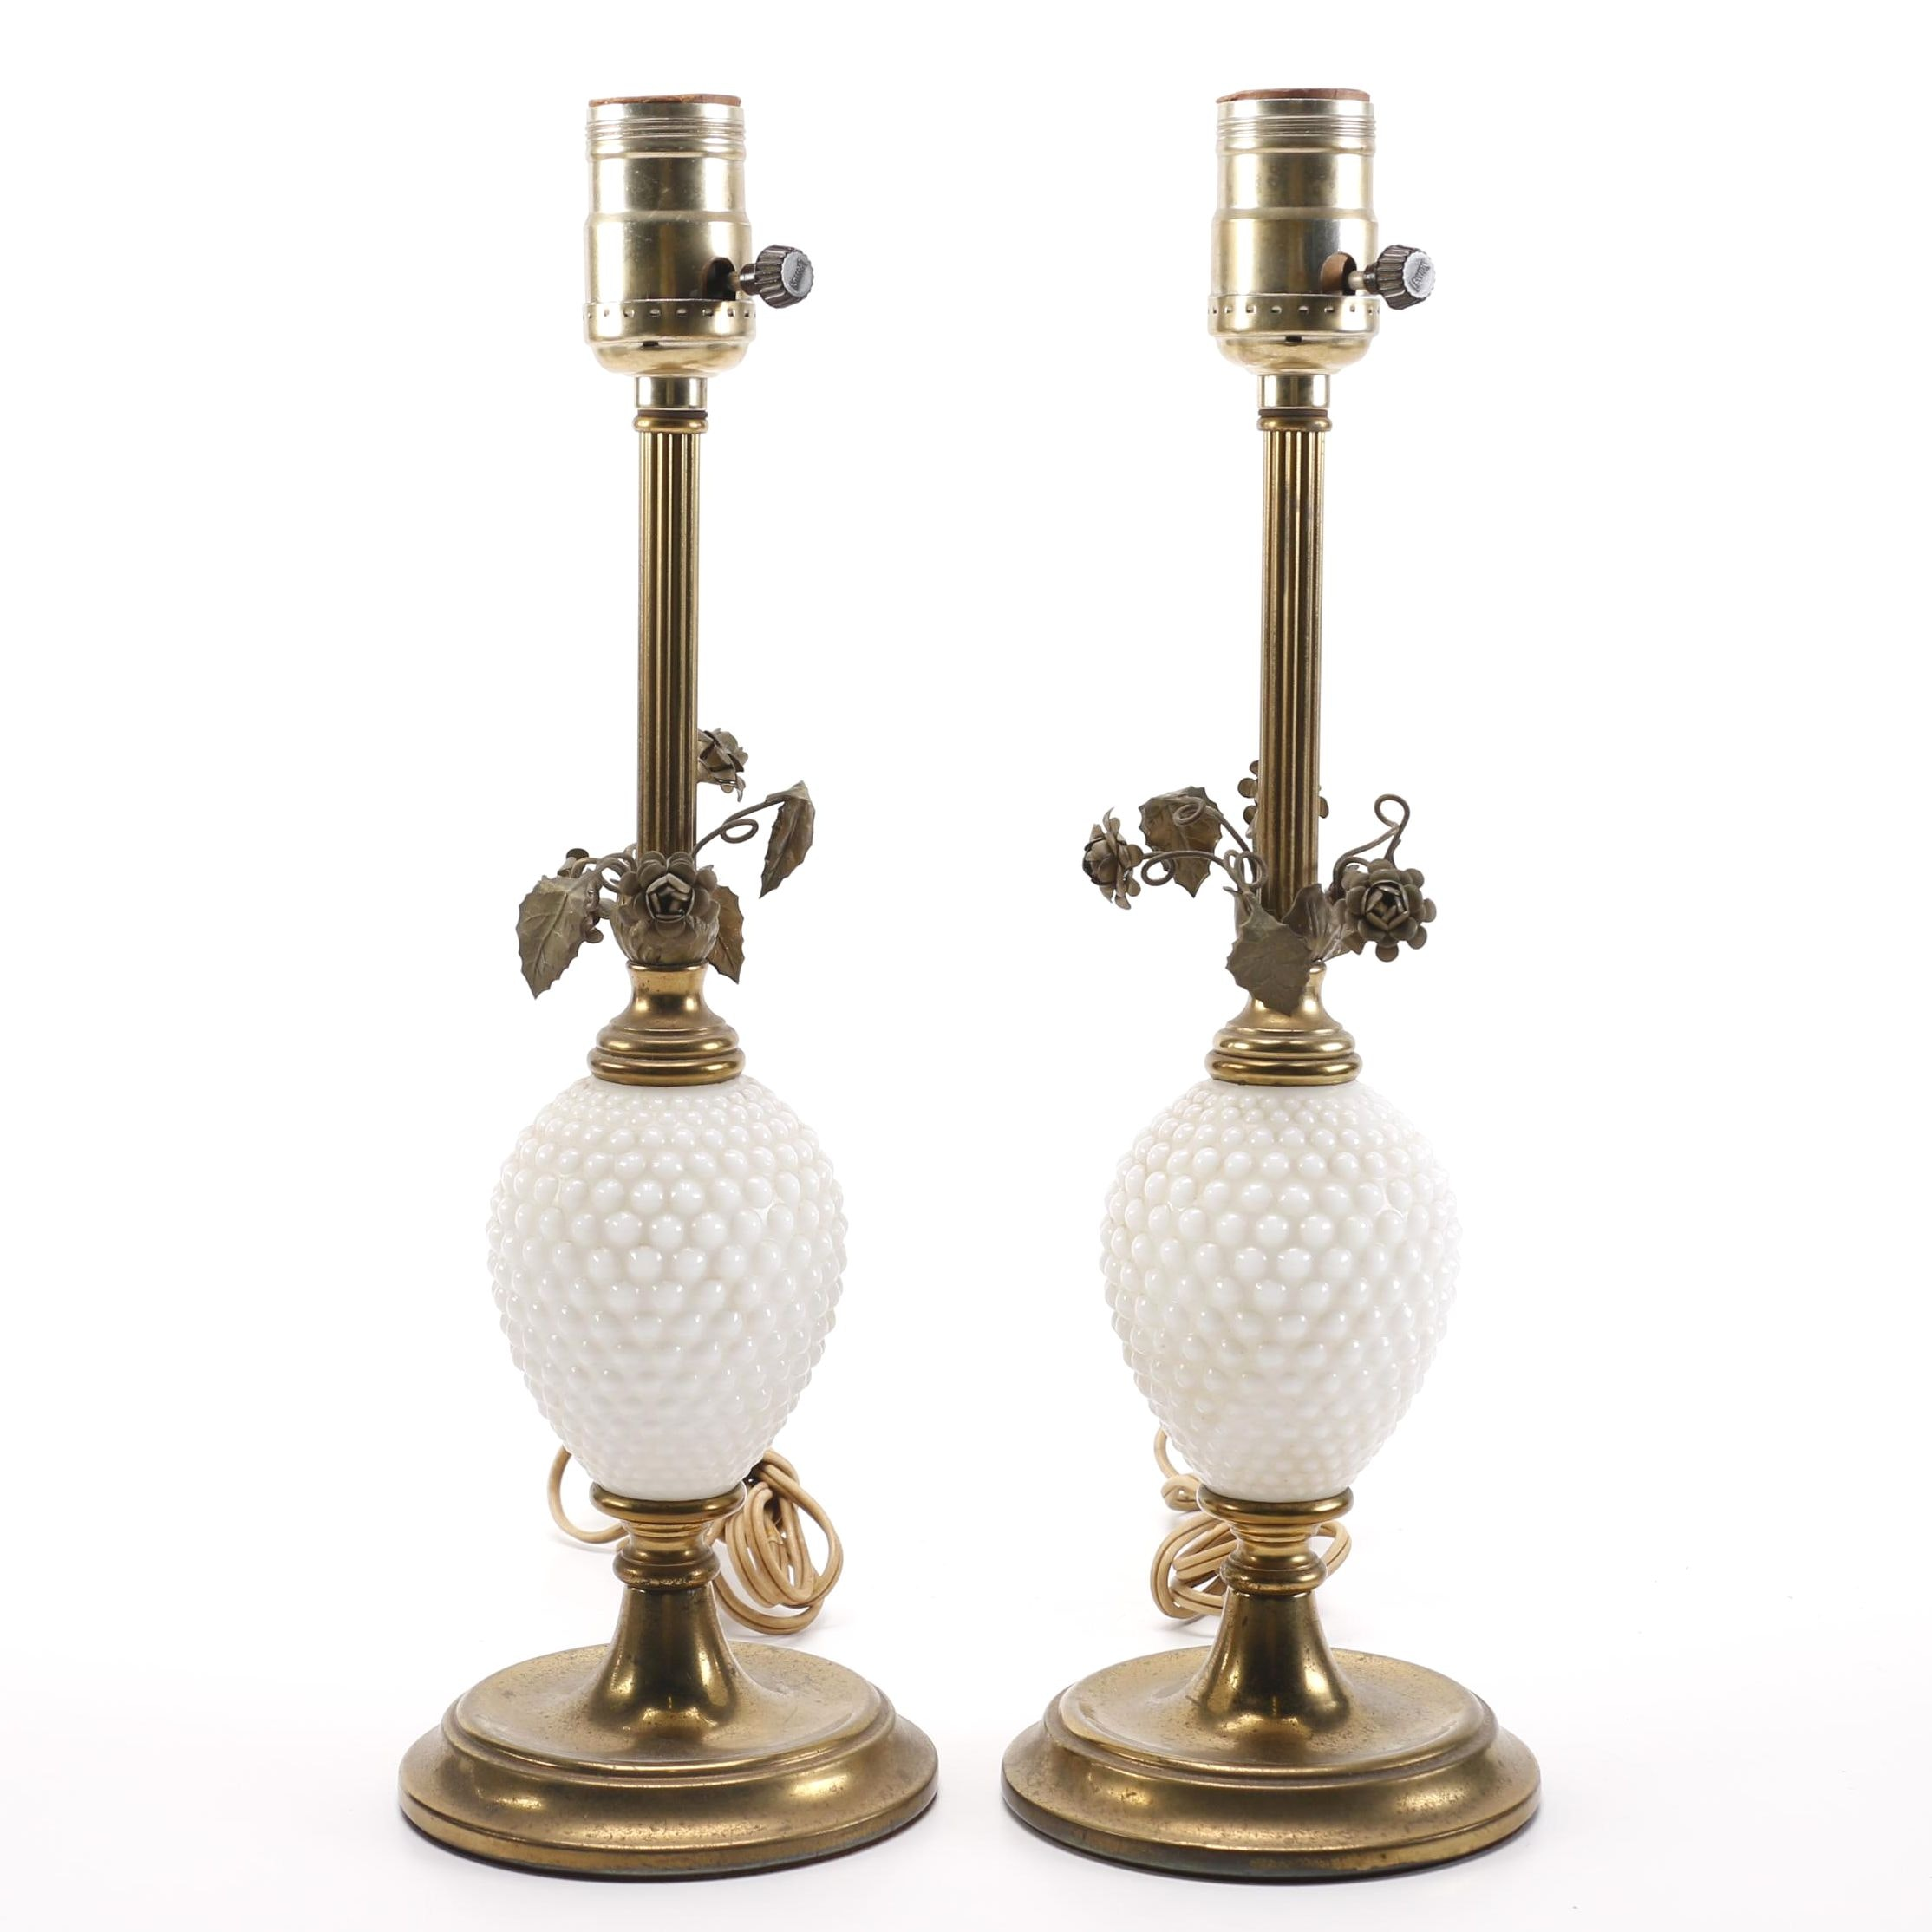 Vintage Metal and Milk Glass Table Lamps